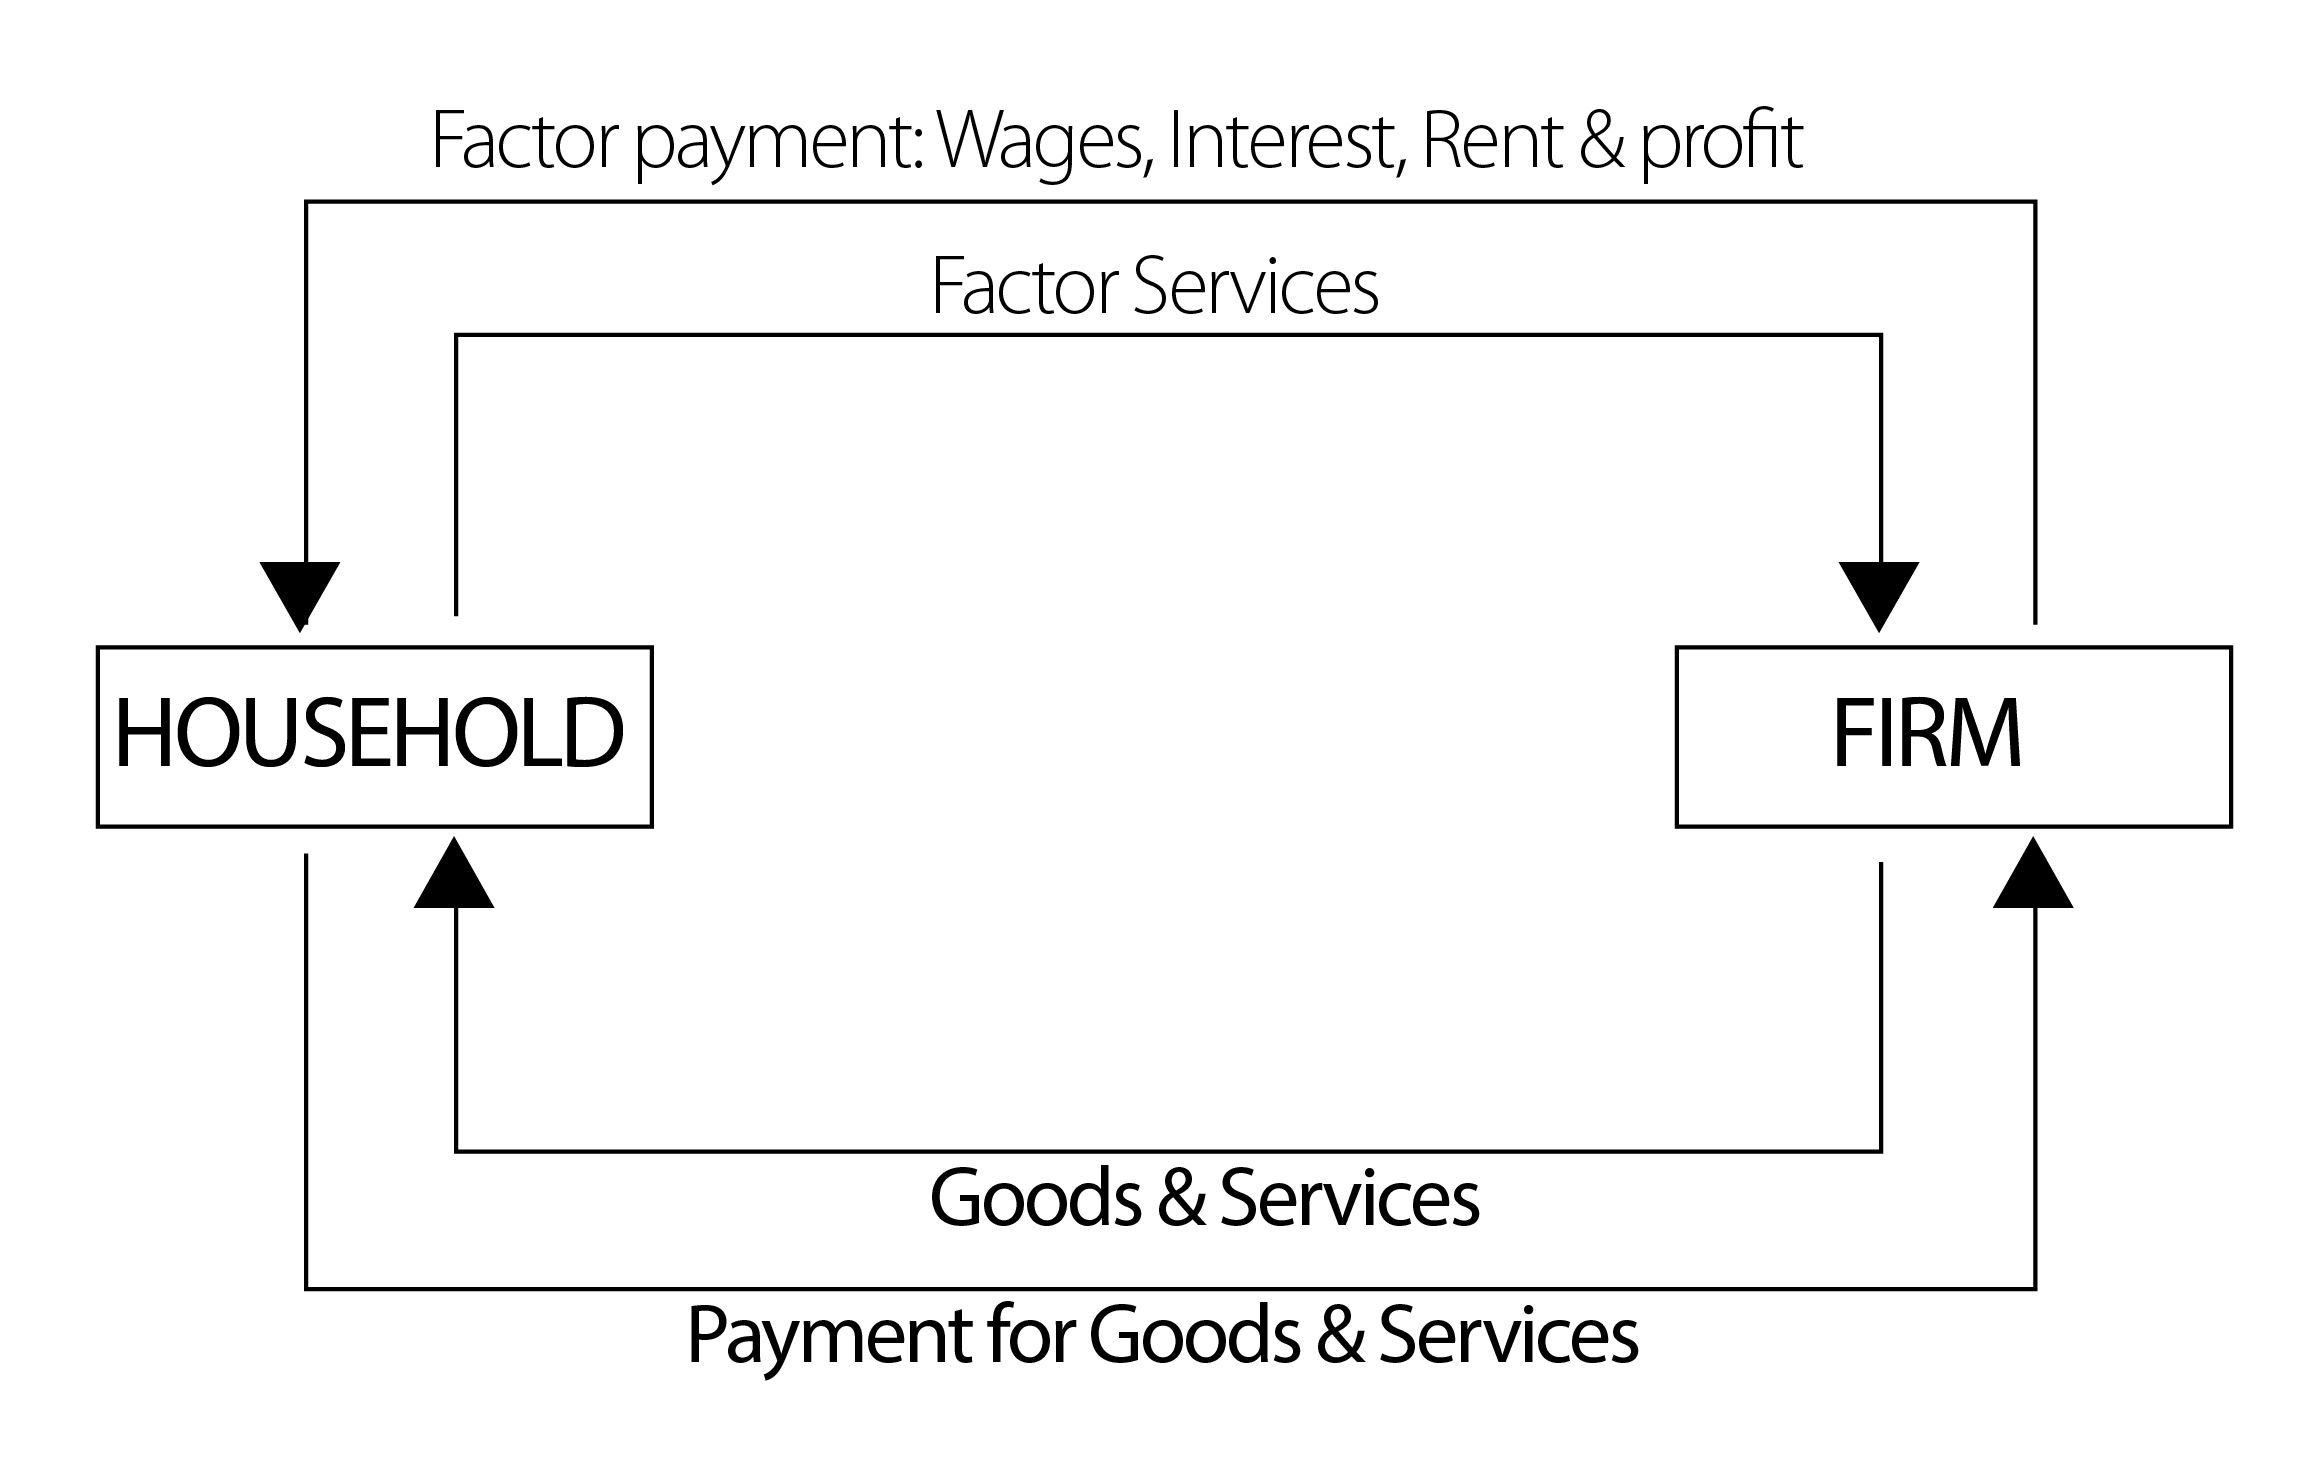 circular flow diagram with government sector 3 phase wiring uk best 25 43 of income ideas on pinterest